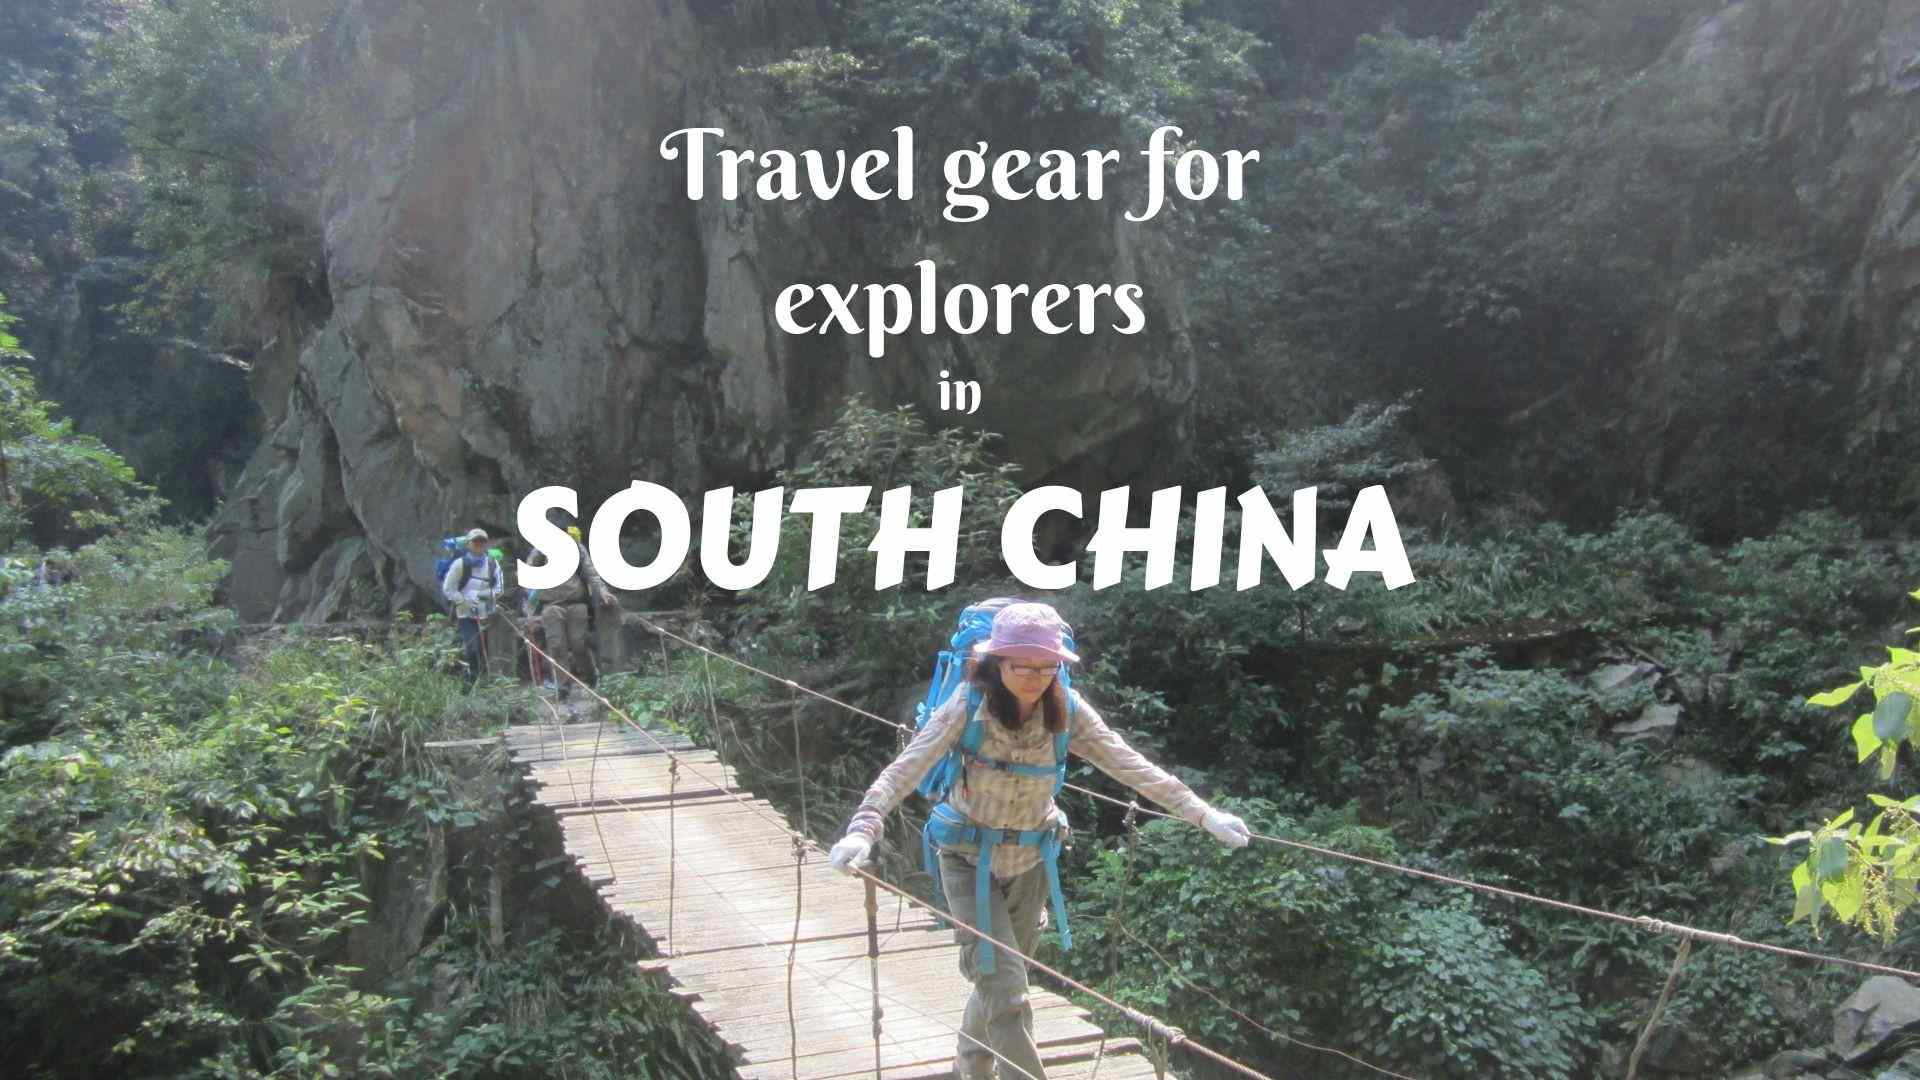 Travel Gear for explorers in South China